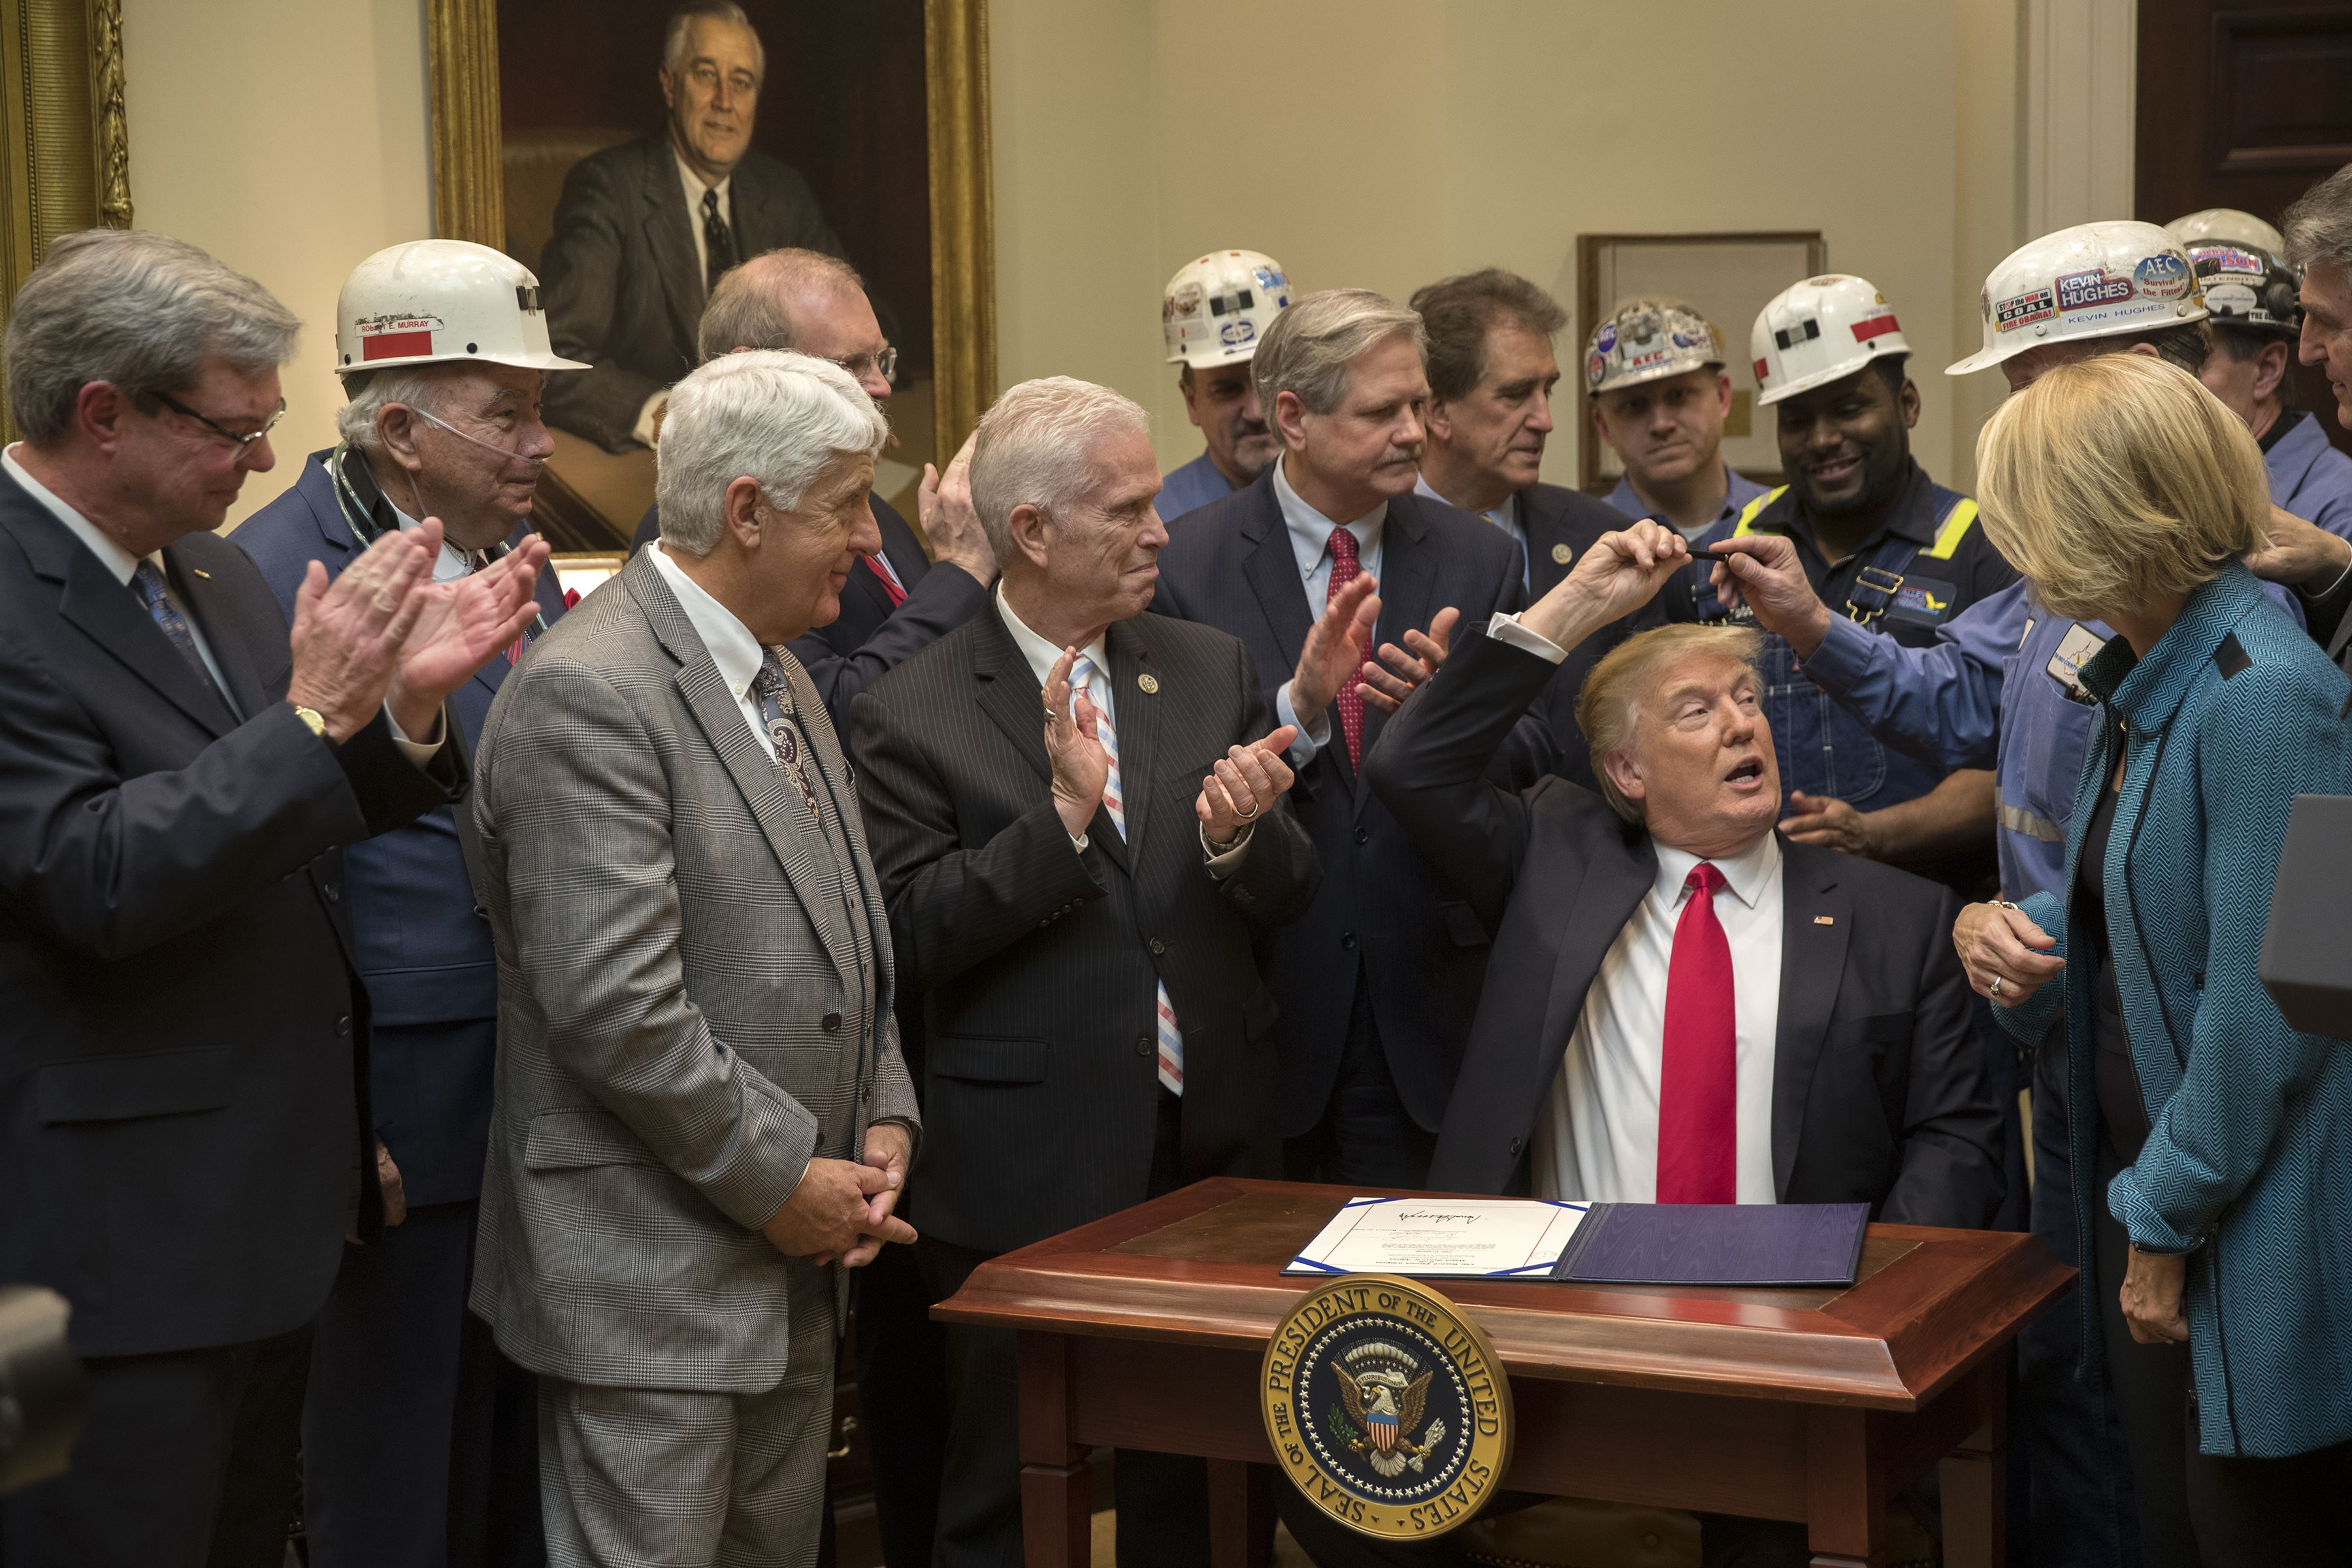 TRUMP COAL ORDER 1-116 President Donald Trump, joined by lawmakers and coal miners, hands off his pen during the signing of a measure to dismantle the Stream Protection Rule, in the Roosevelt Room of the White House in Washington, D.C., on Thursday.